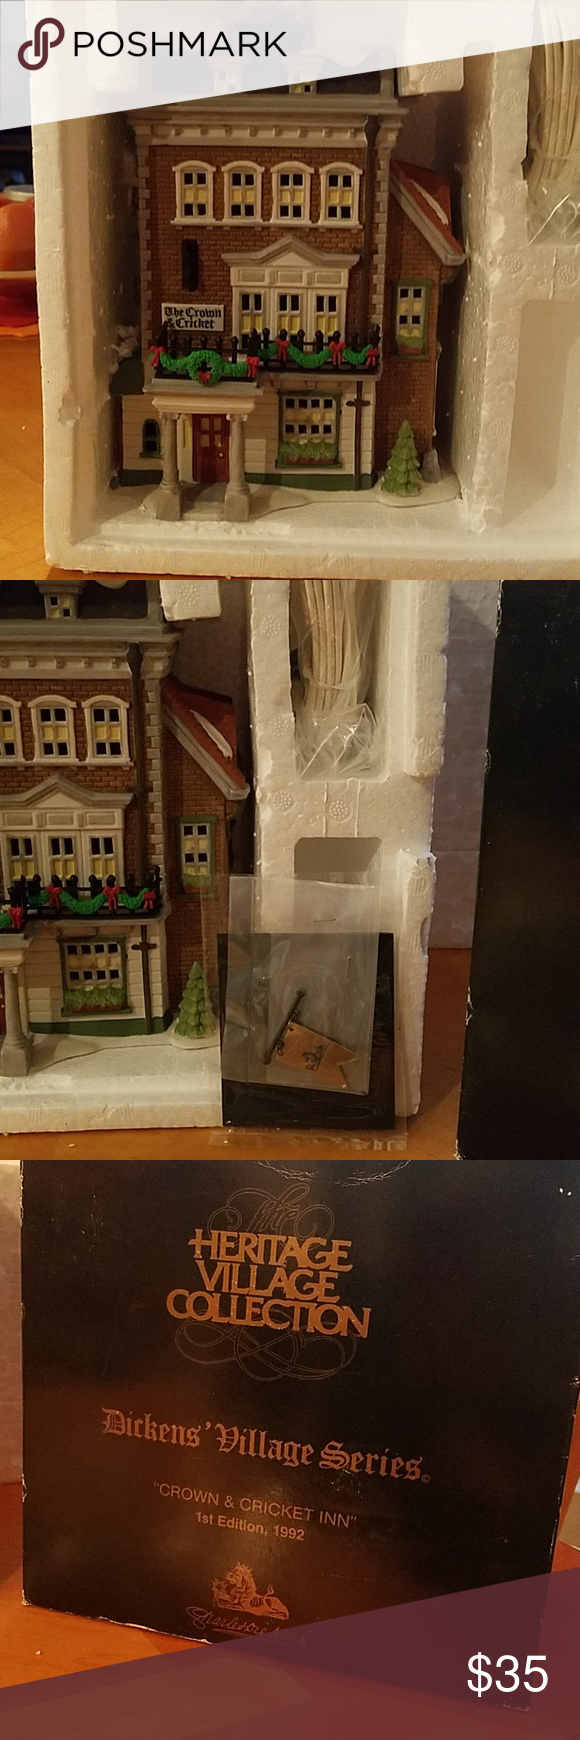 Dept 56 Dickens Village Crown Cricket Inn Nib Dept 56 Dickens Village Dickens Village Colorful Decor